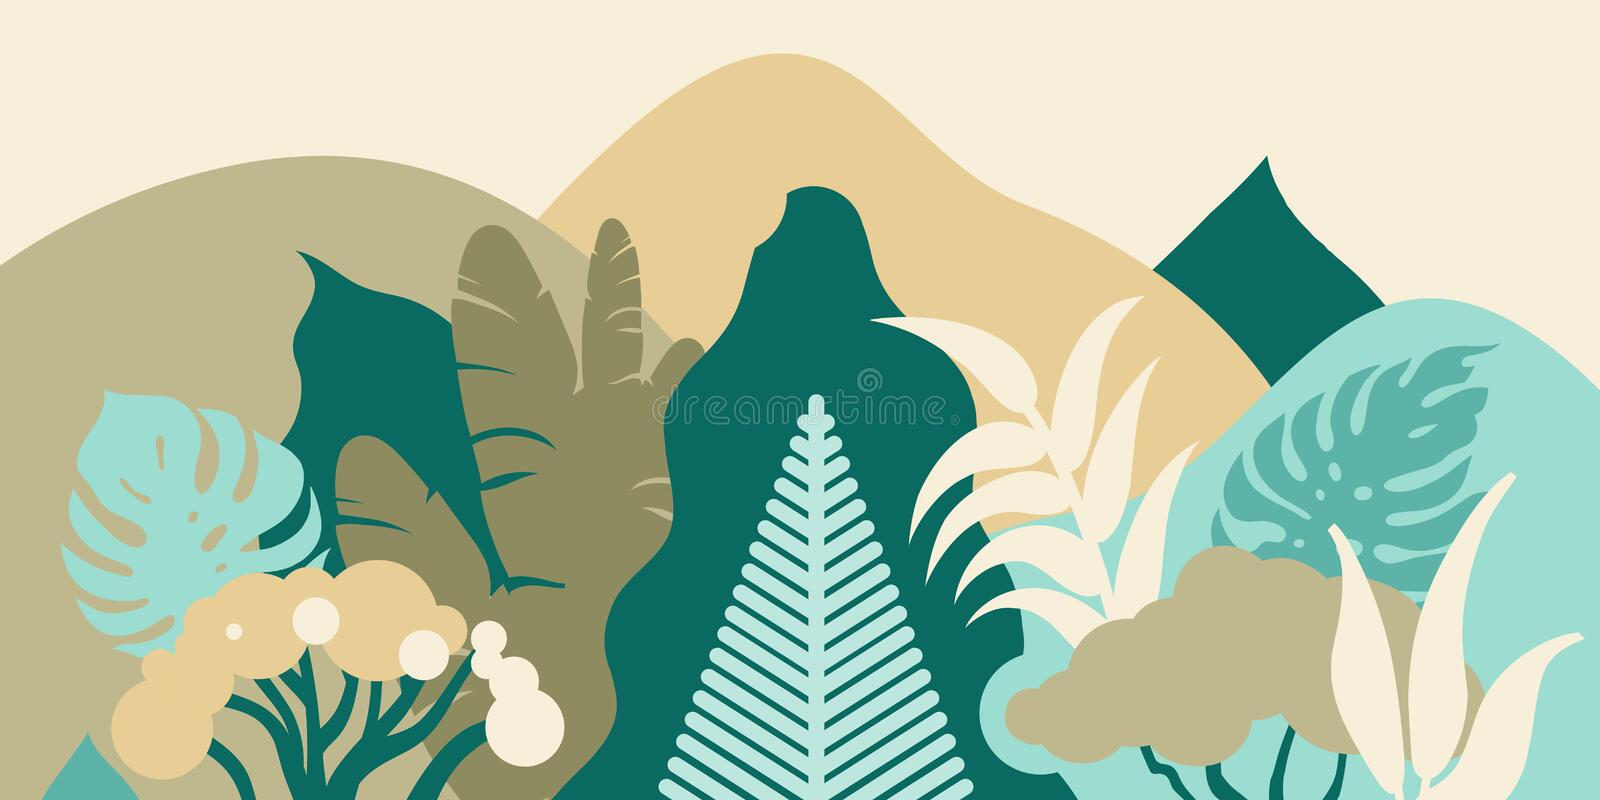 Forest in the mountains with tropical plants. Landscape for tourism. Preservation of the environment. Park, outdoor space. vector illustration